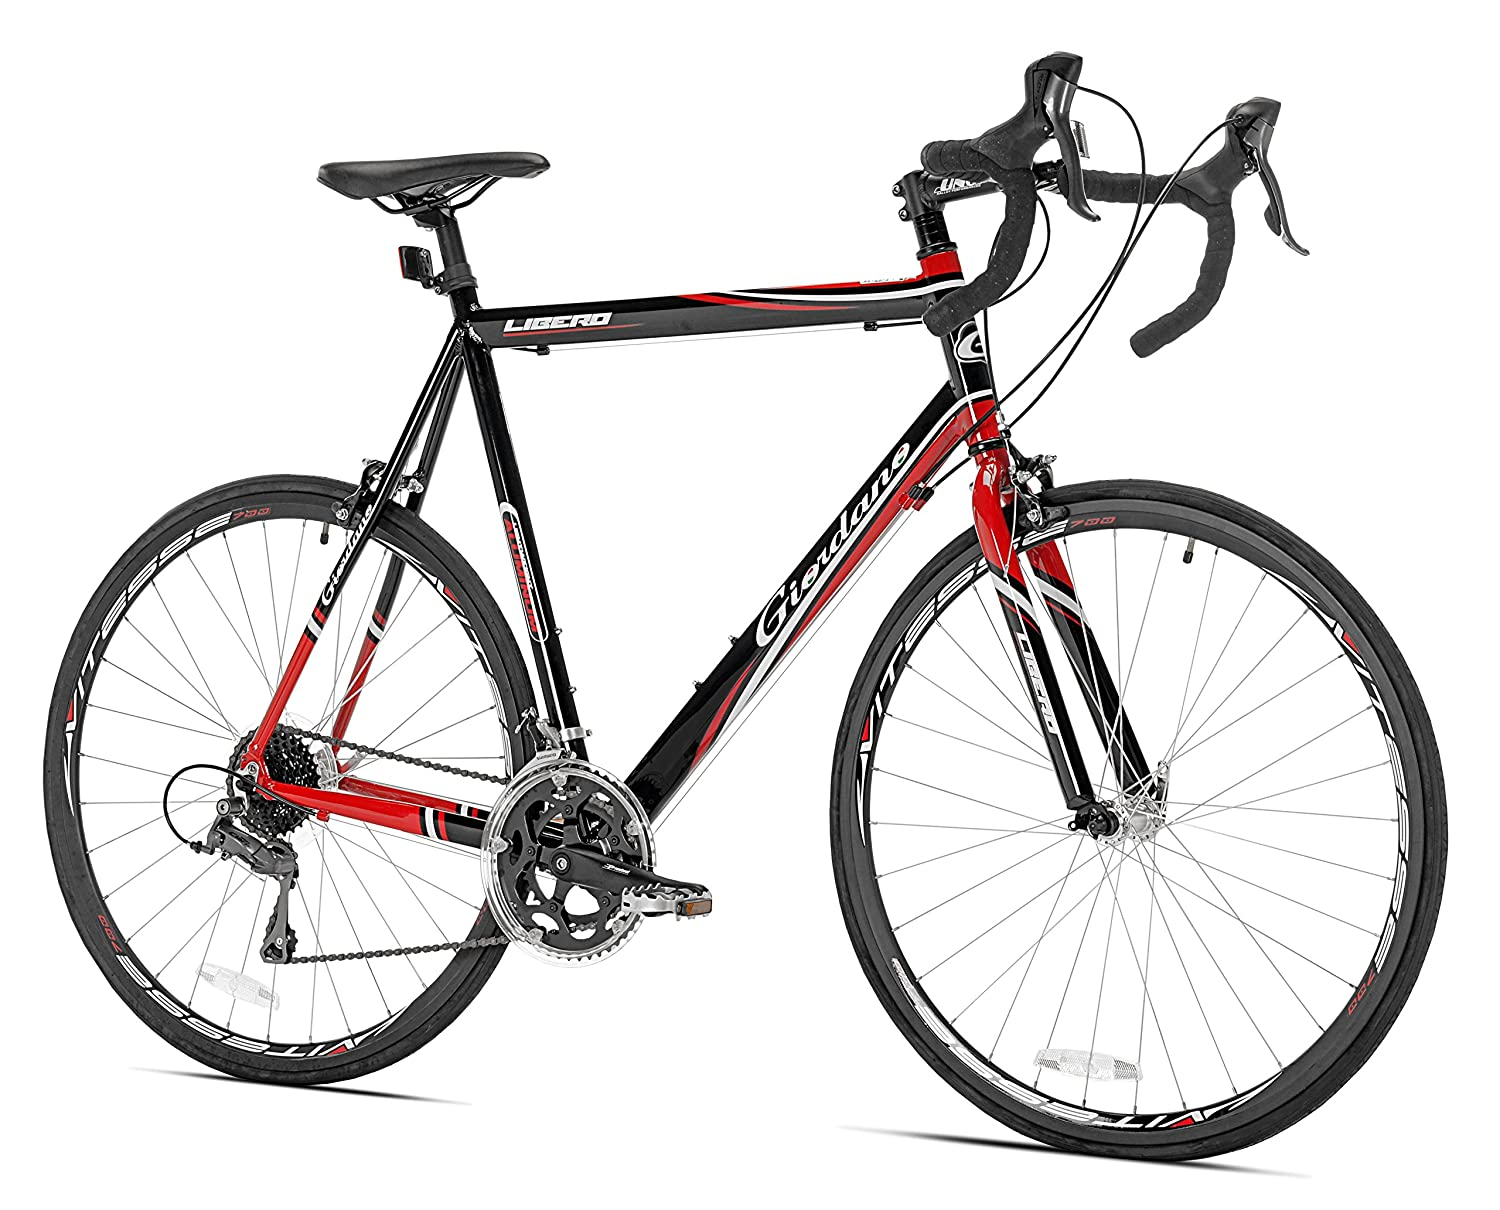 Giordano Libero 1.6 Best Road Bike Under $1000